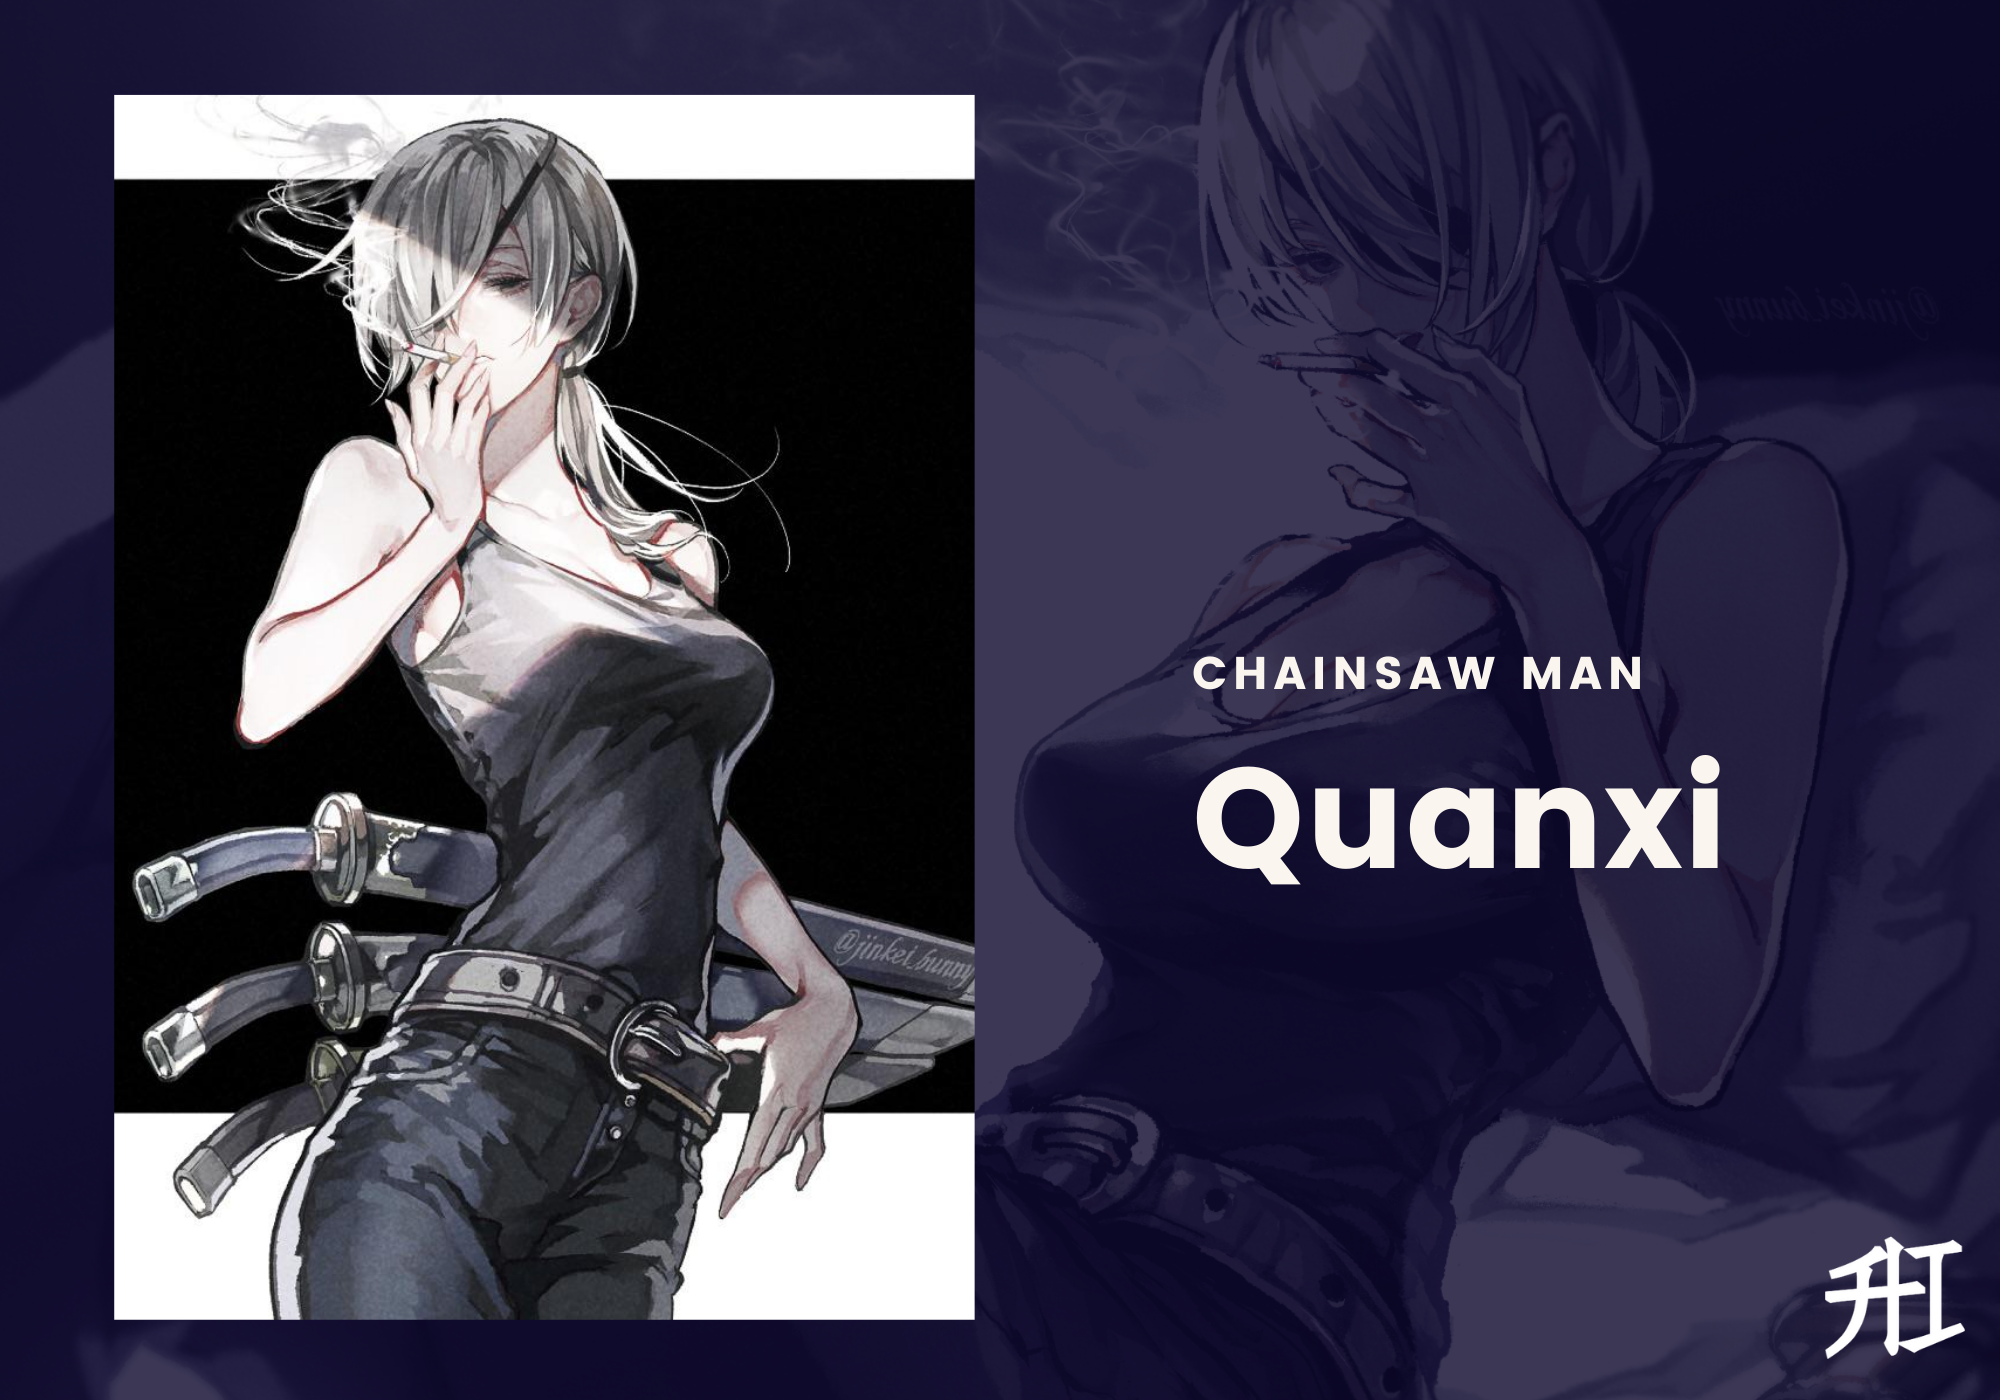 Quanxi strongest character in chainsaw man